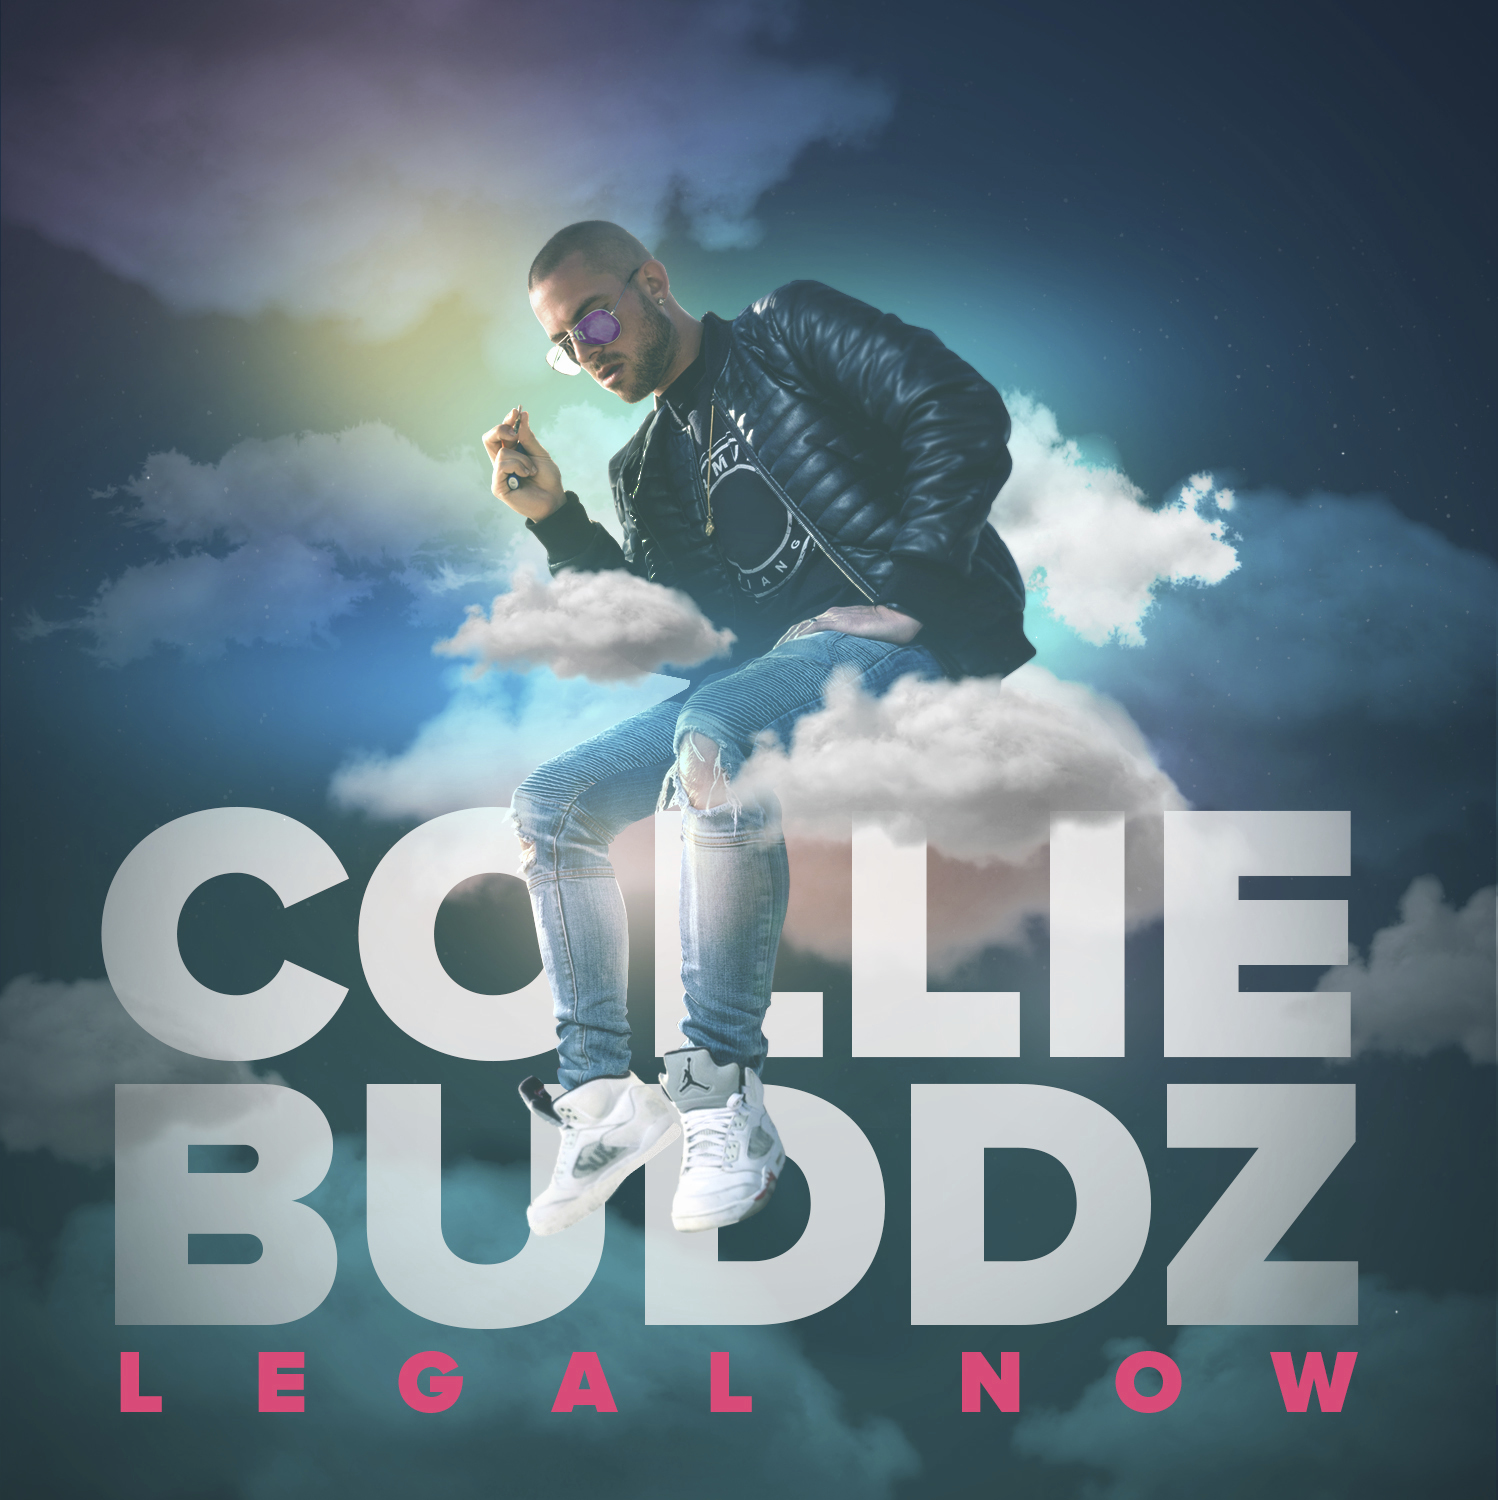 Collie Buddz Legal Now